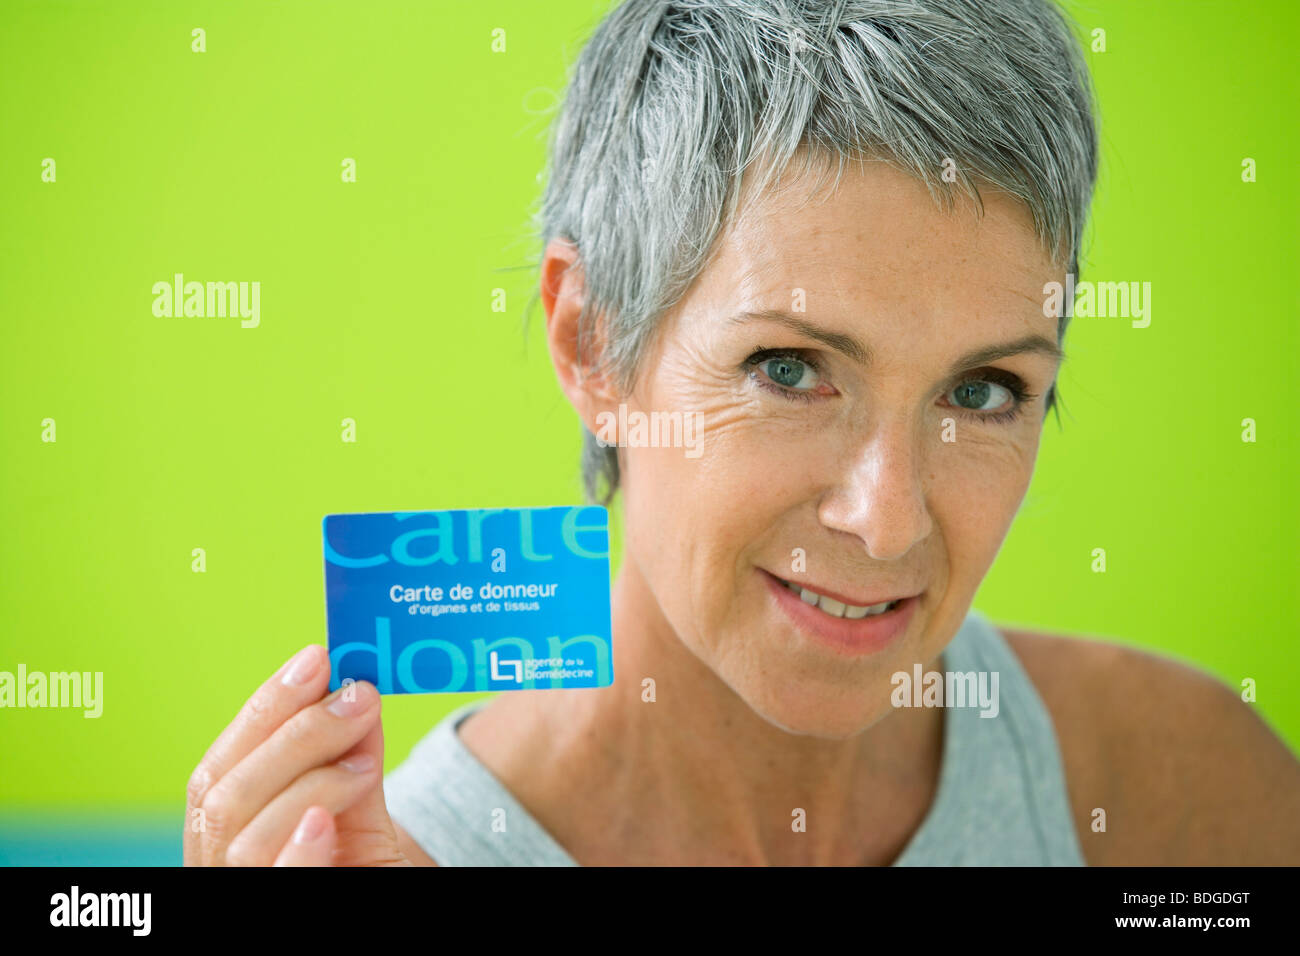 DONOR'S CARD - Stock Image